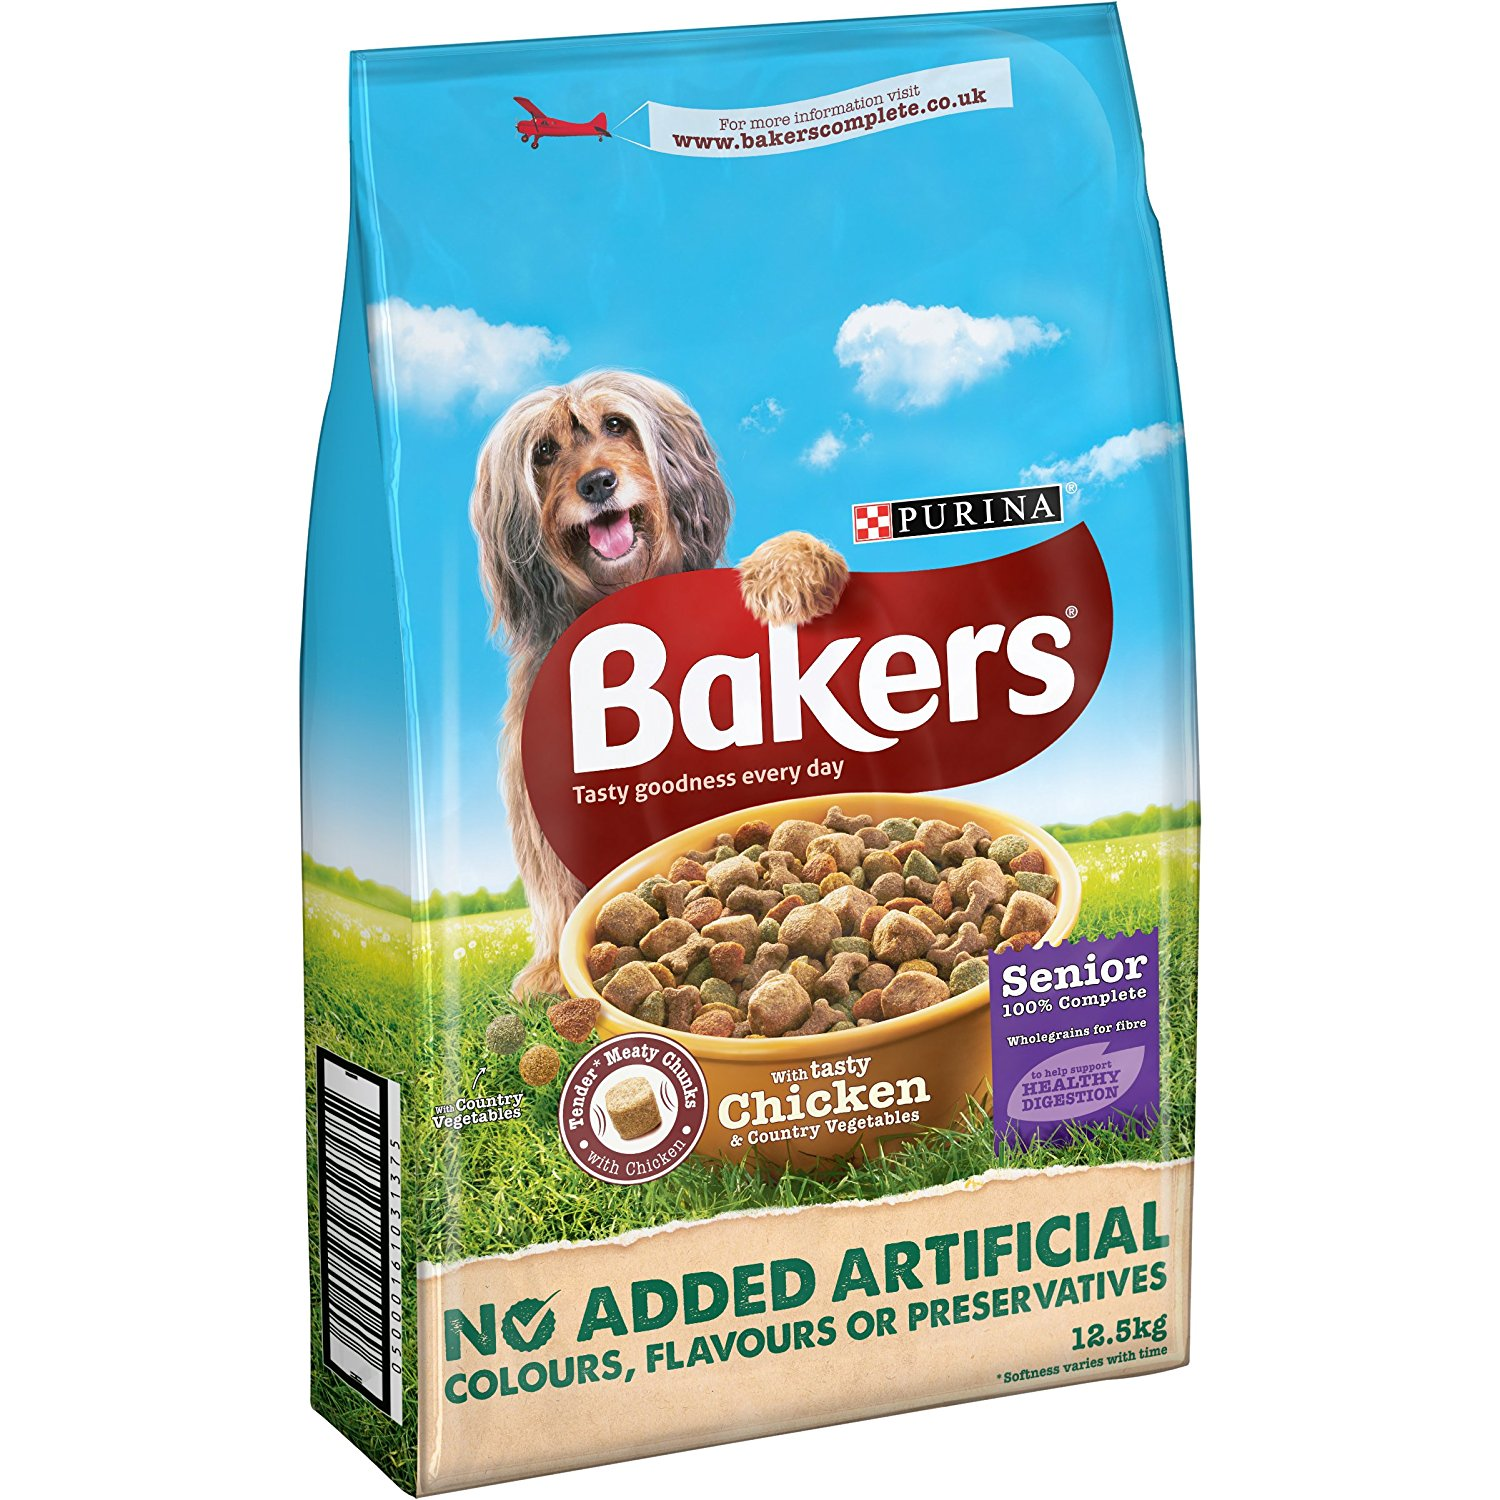 Purina Bakers Free Dog Food Samples